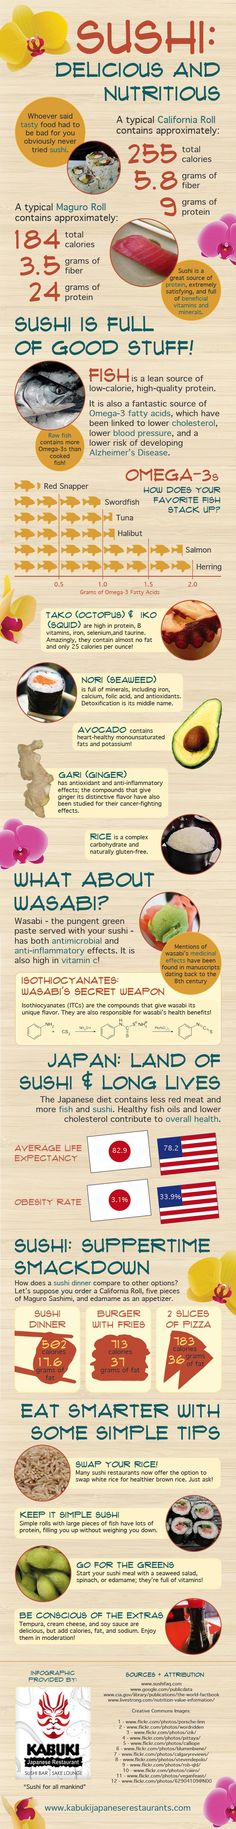 Sushi: Delicious and Nutritious (Infographic)